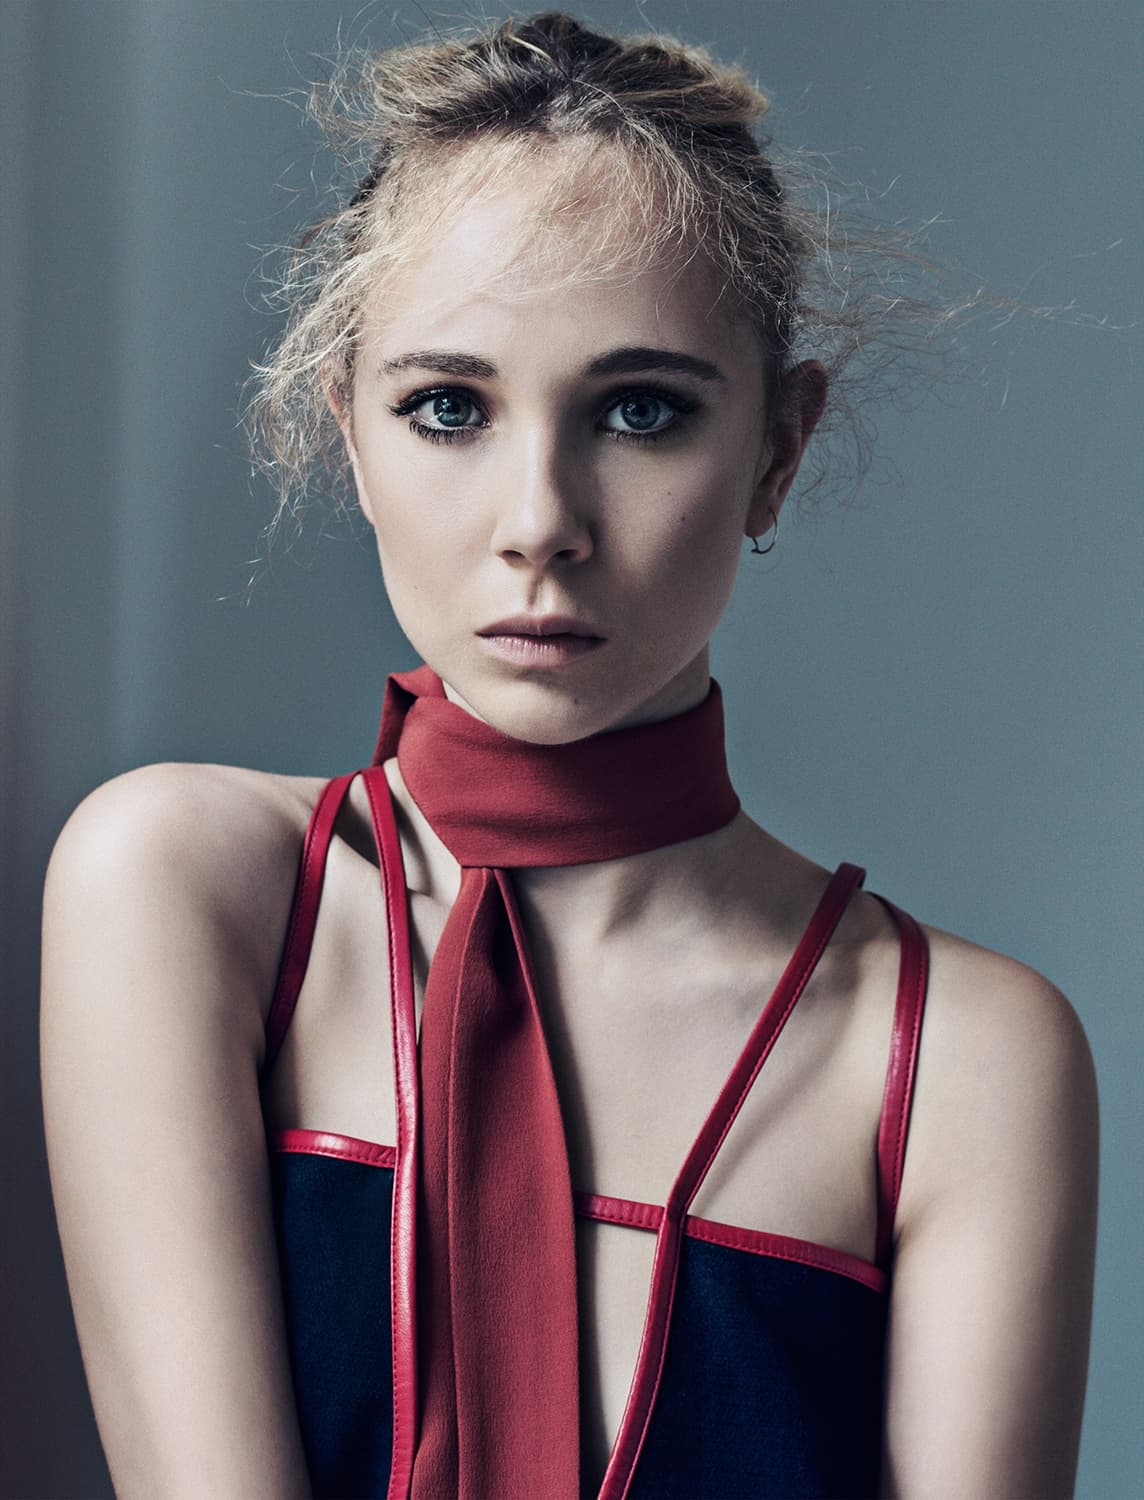 Juno Temple for iPhone image